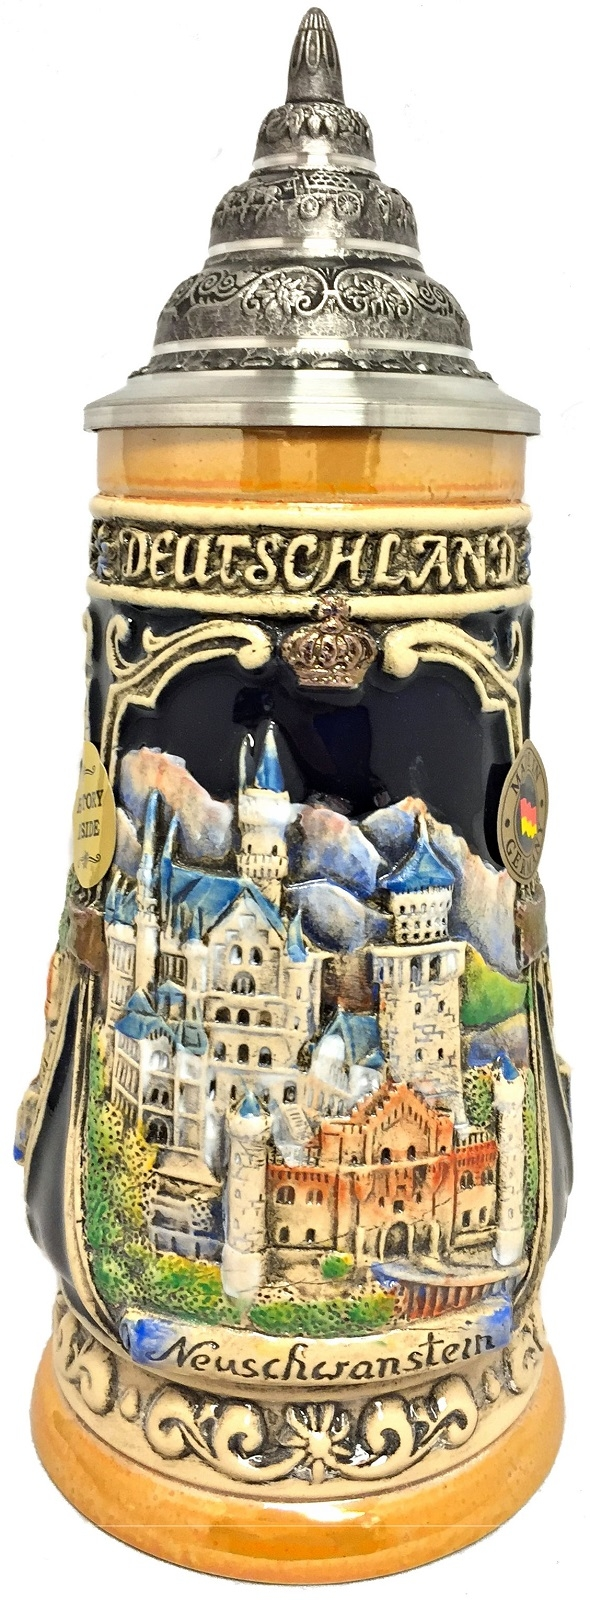 Neuschwanstein Castle LE Relief German Beer Stein .25 L Bavaria Germany